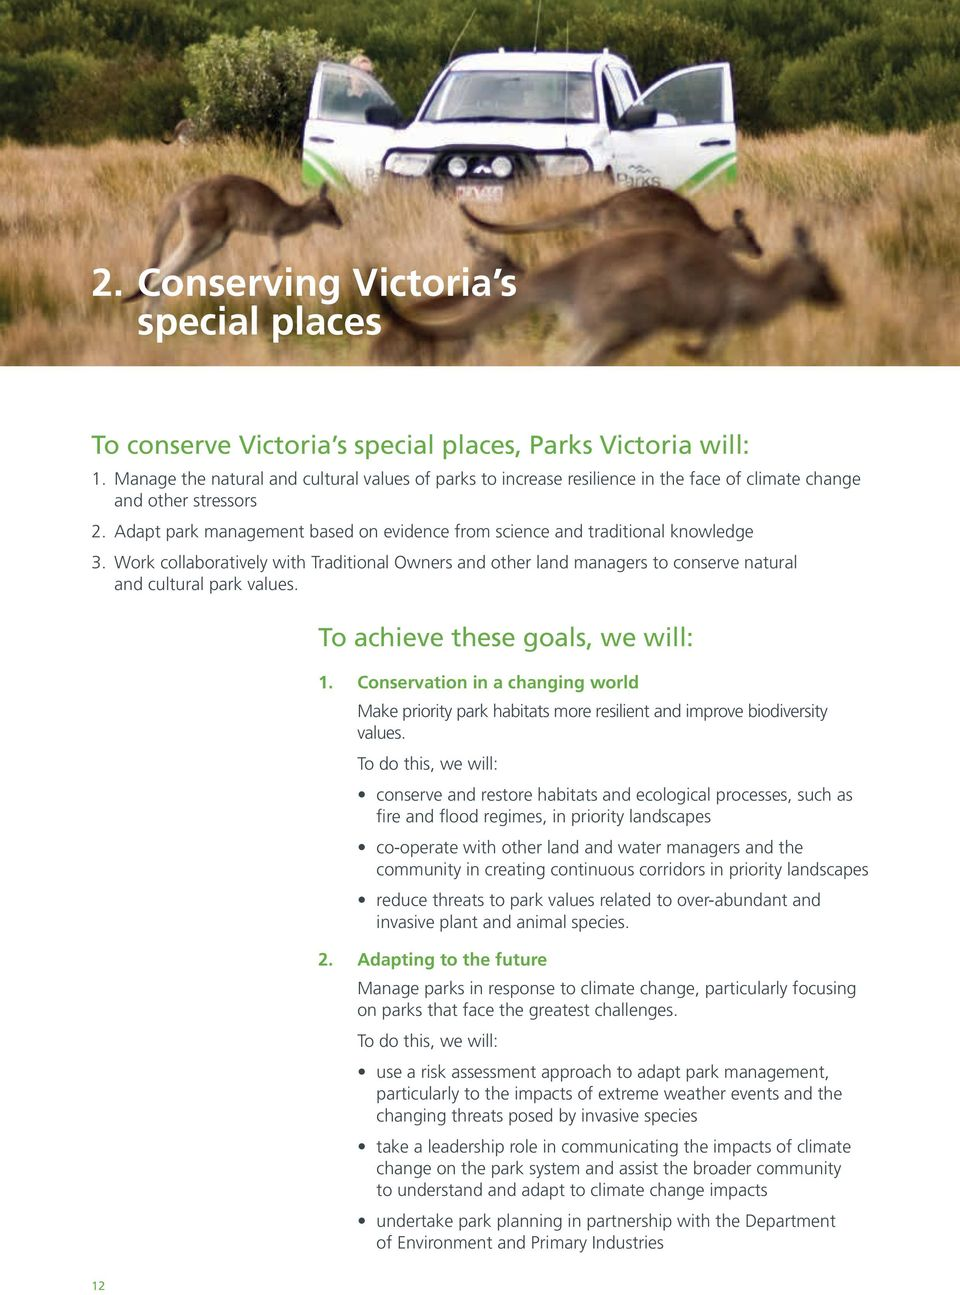 Adapt park management based on evidence from science and traditional knowledge 3. Work collaboratively with Traditional Owners and other land managers to conserve natural and cultural park values.